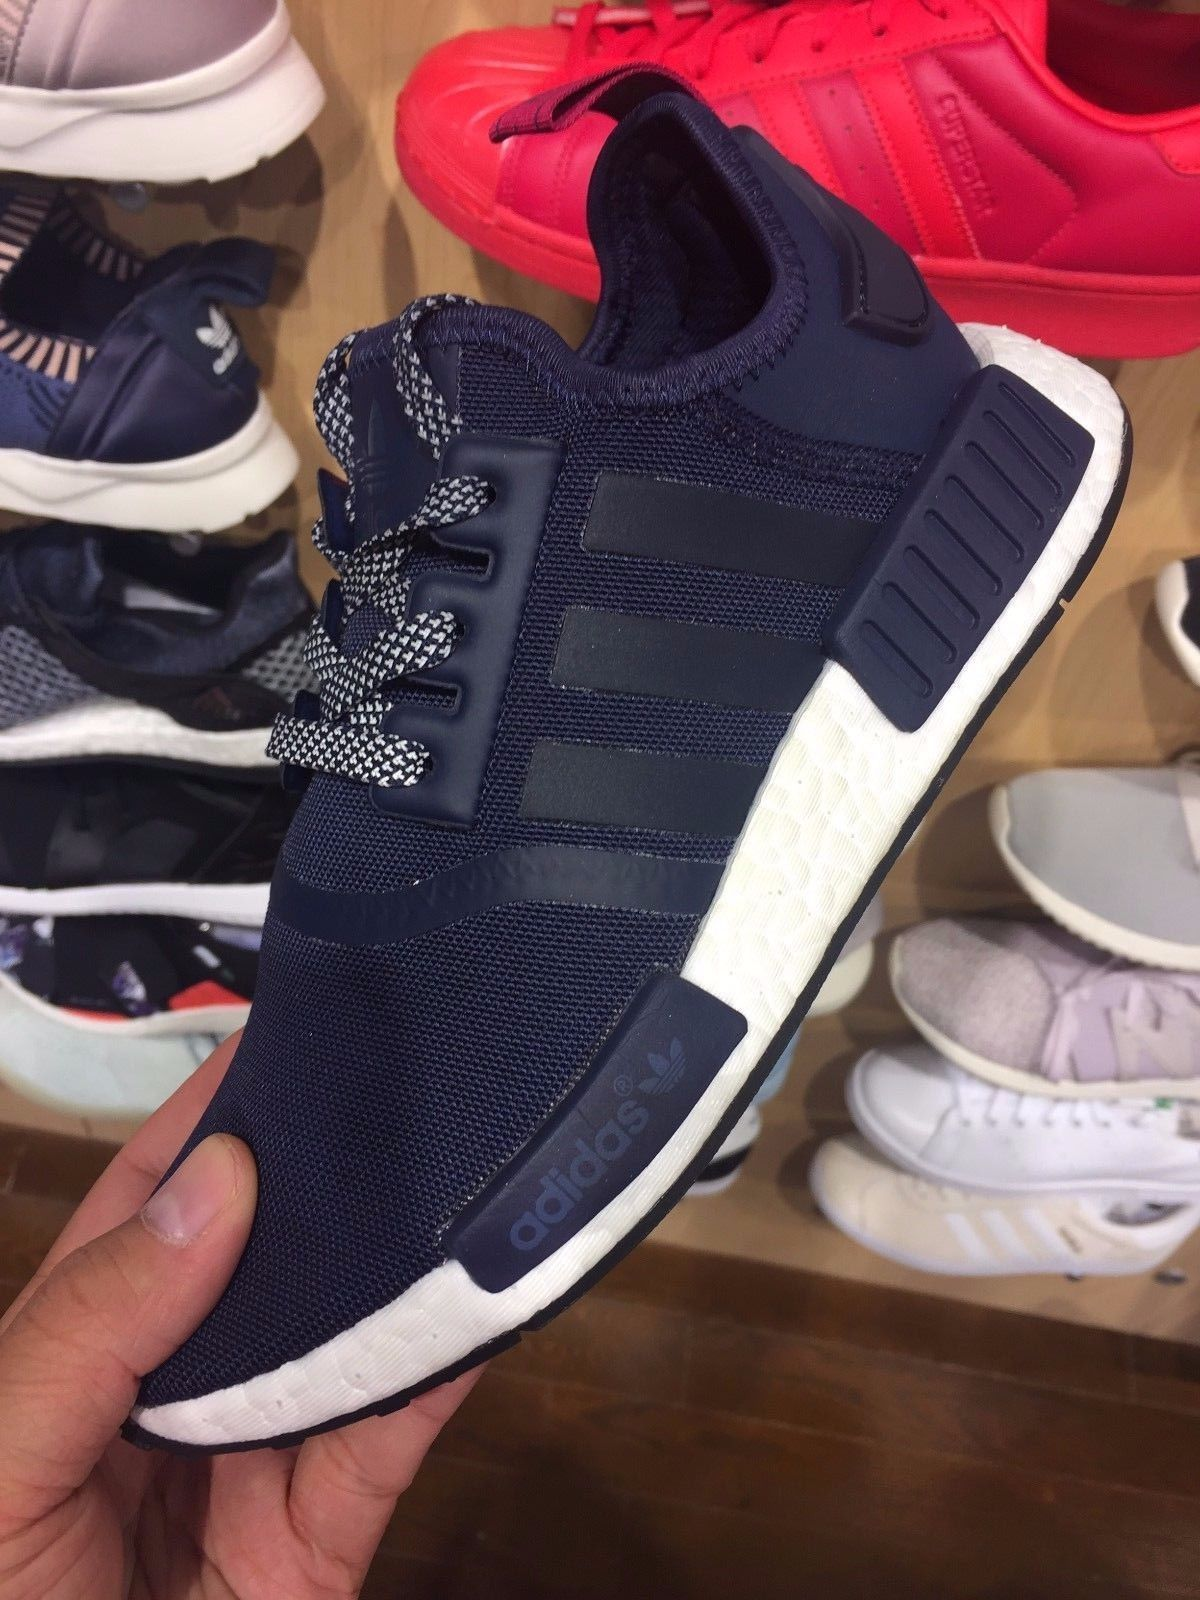 promo code c0f31 71c26 Adidas Nmd R1 Navy White Women Sizes